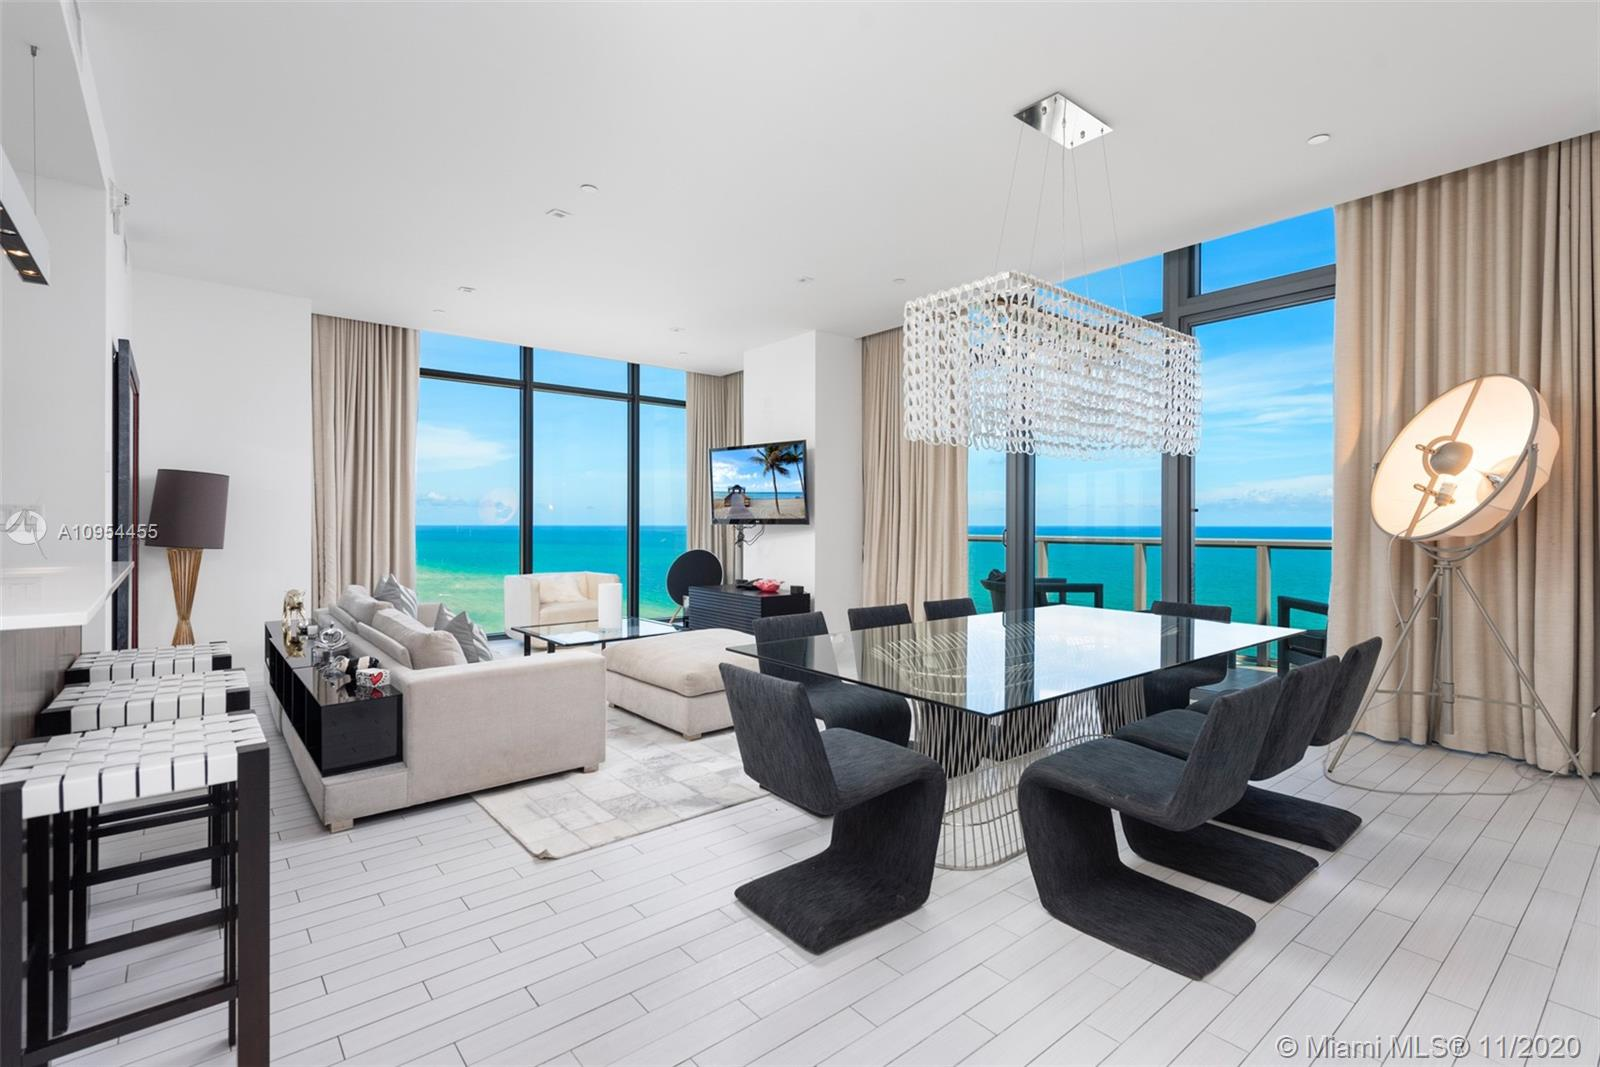 Rarely available, Gorgeous 3bed/3.5ba Upper Penthouse with stunning direct ocean views at W South Beach.  Beautifully designed and fully furnished, expansive glass balconies from each room with unparalleled views of the beach and ocean. Kitchen with top-of-the-line appliances. Second level features breath-taking private 1745 sq. ft. rooftop terrace, with a private plunge pool, BBQ grill and lounge areas. Truly one of a kind.